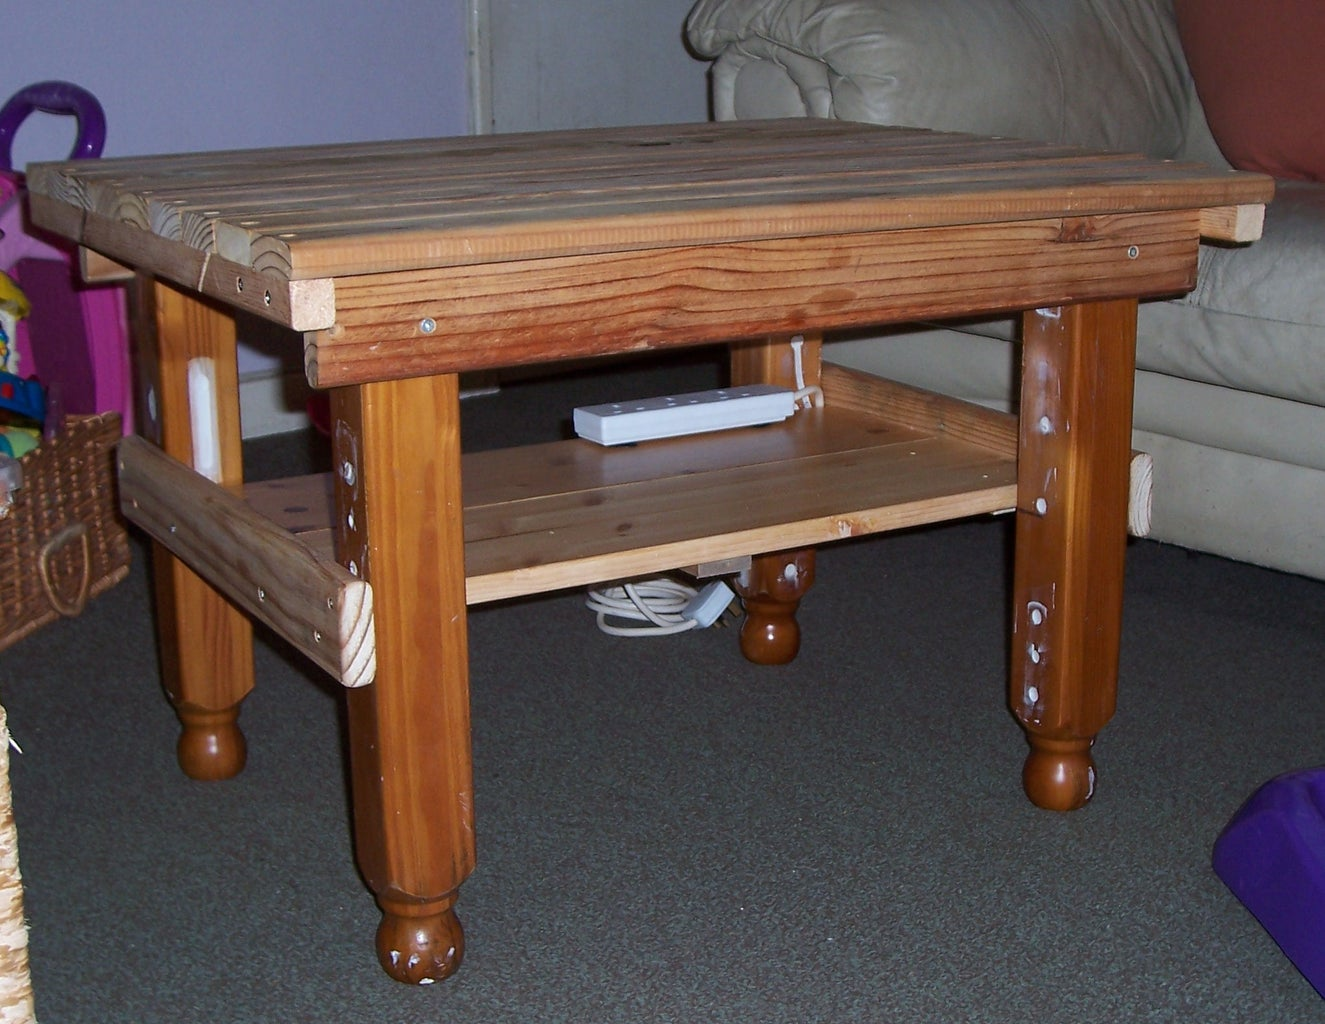 The Finished Table.